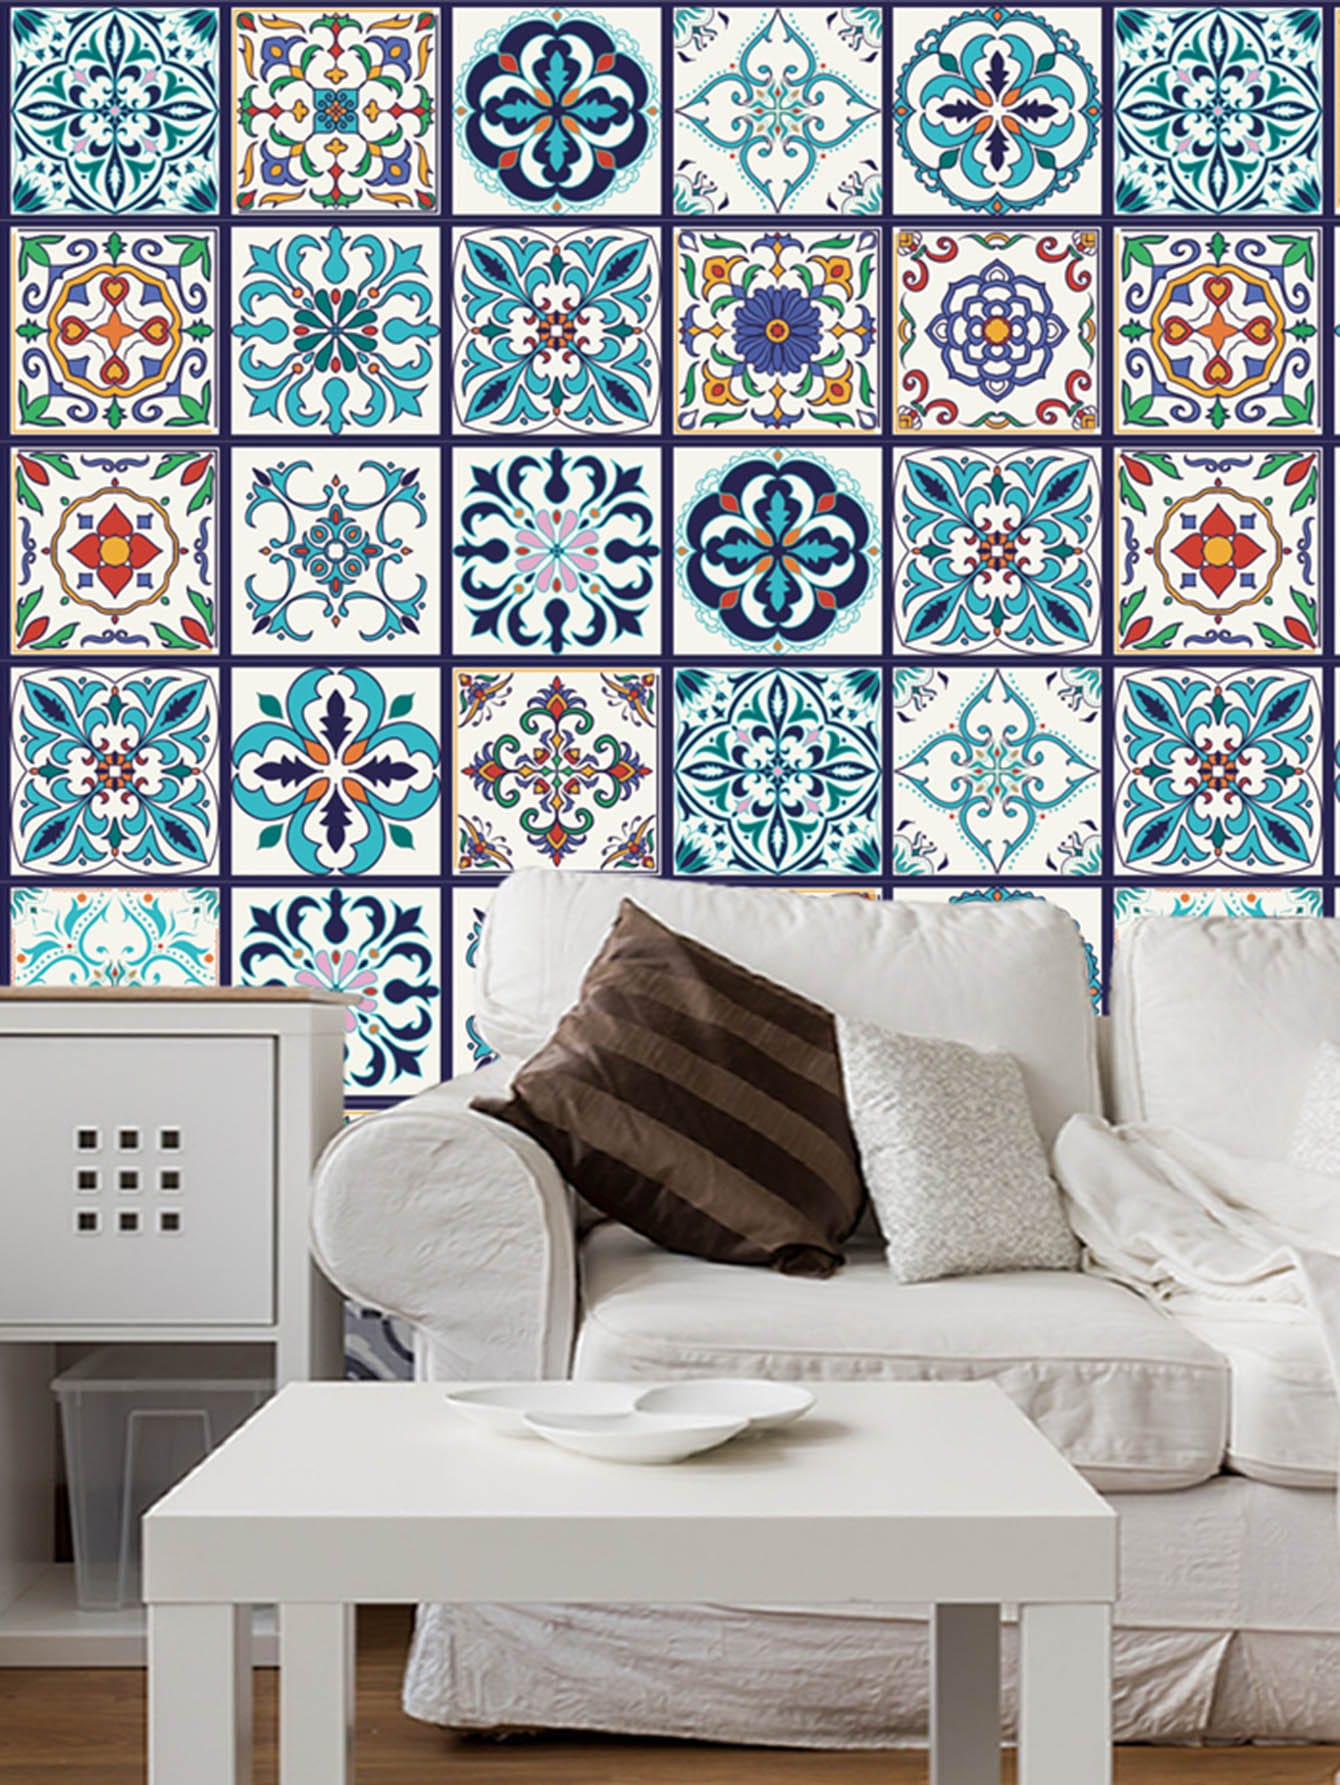 Patchwork Ceramic Tile Sticker 5pcs random brick patchwork ceramic tile sticker 1pc